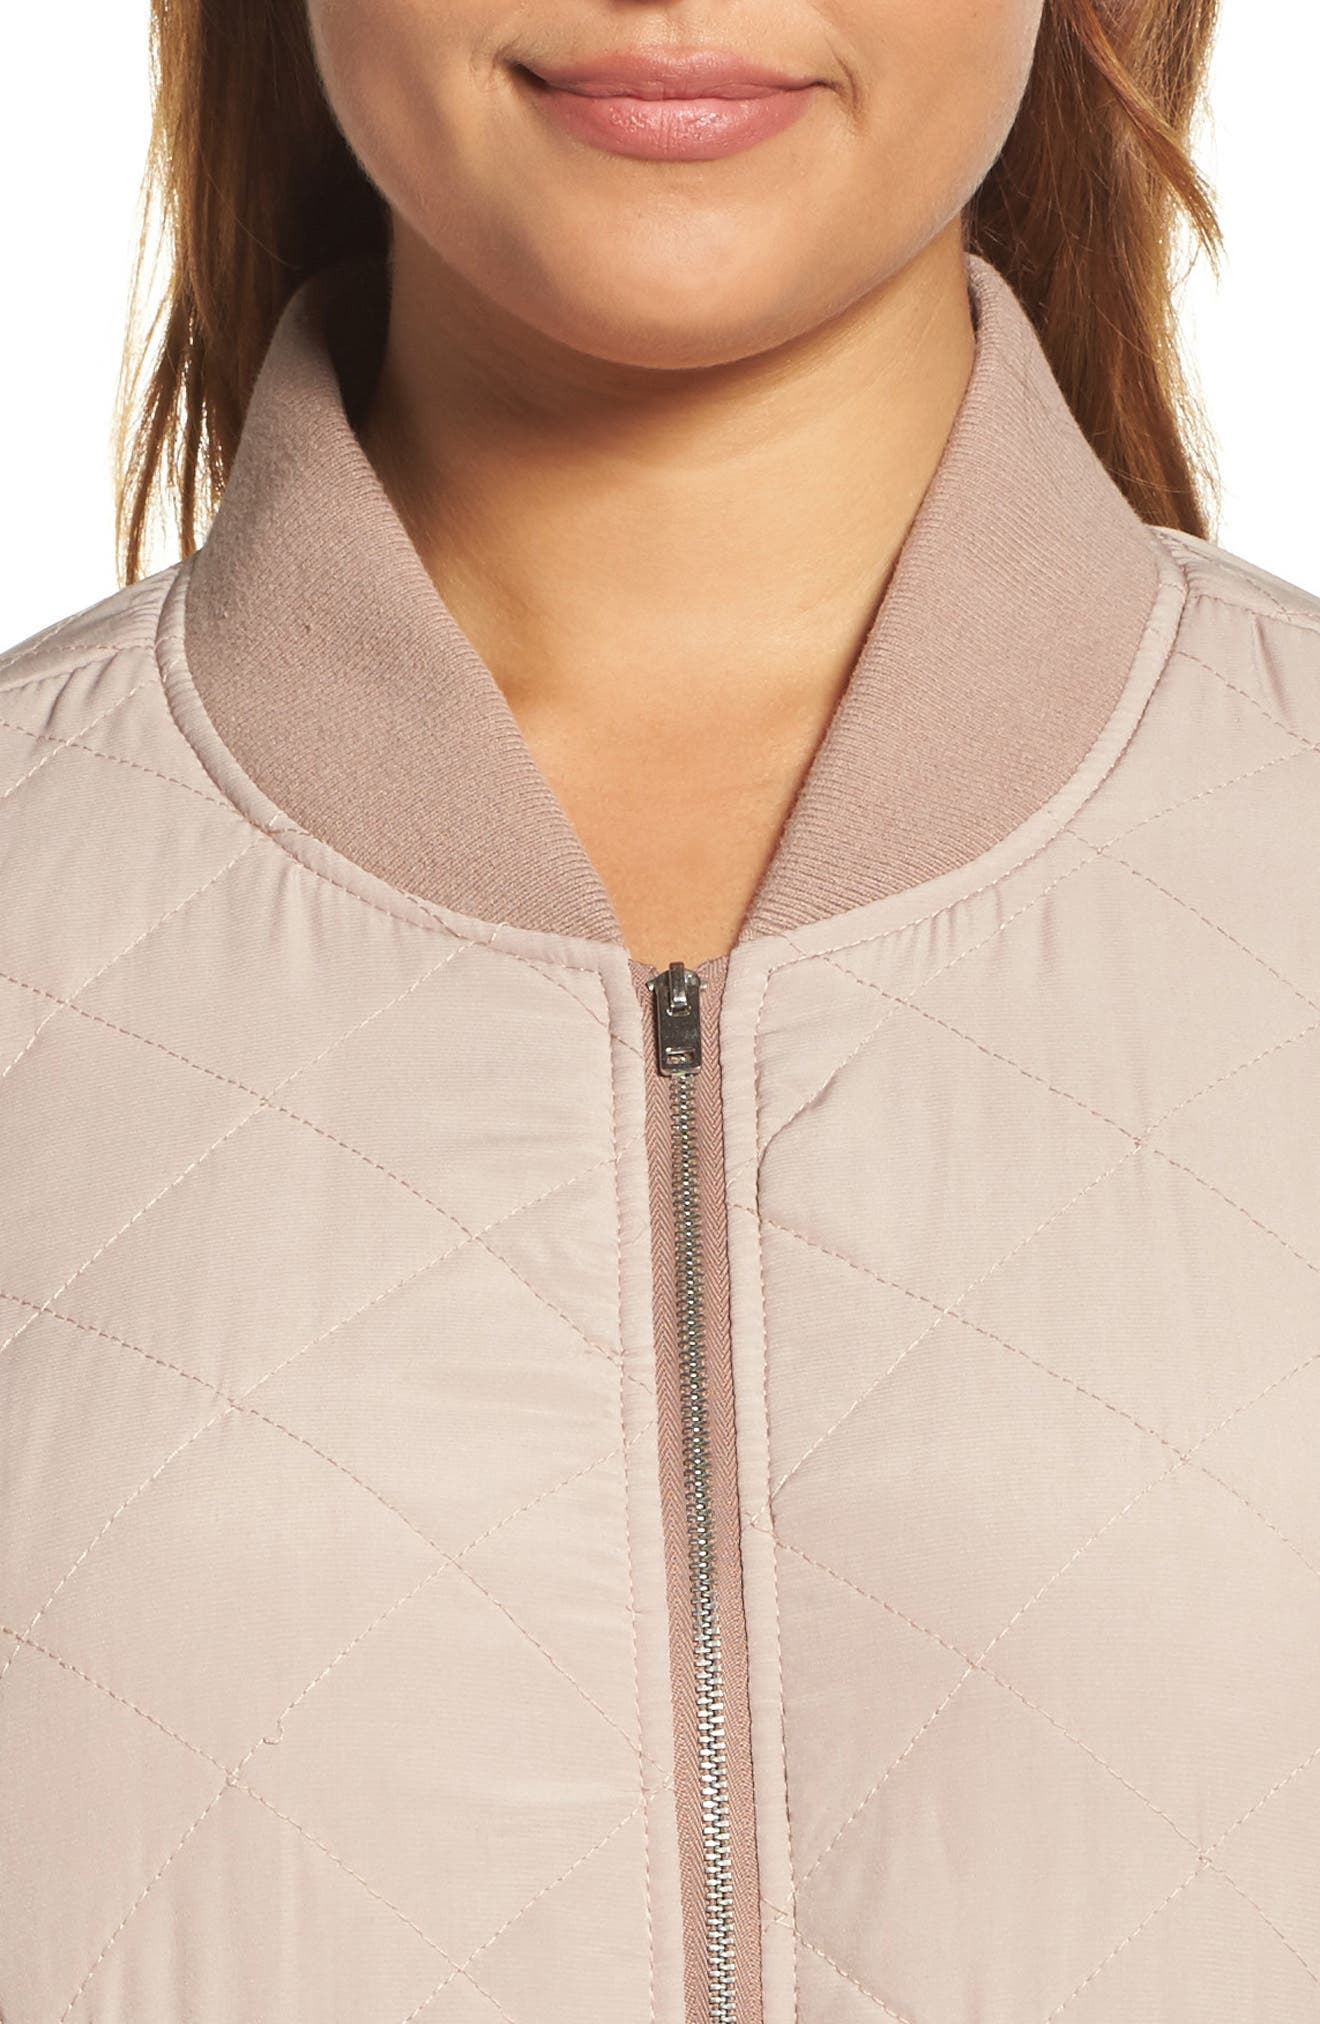 Quilted Bomber Jacket,                             Alternate thumbnail 4, color,                             690